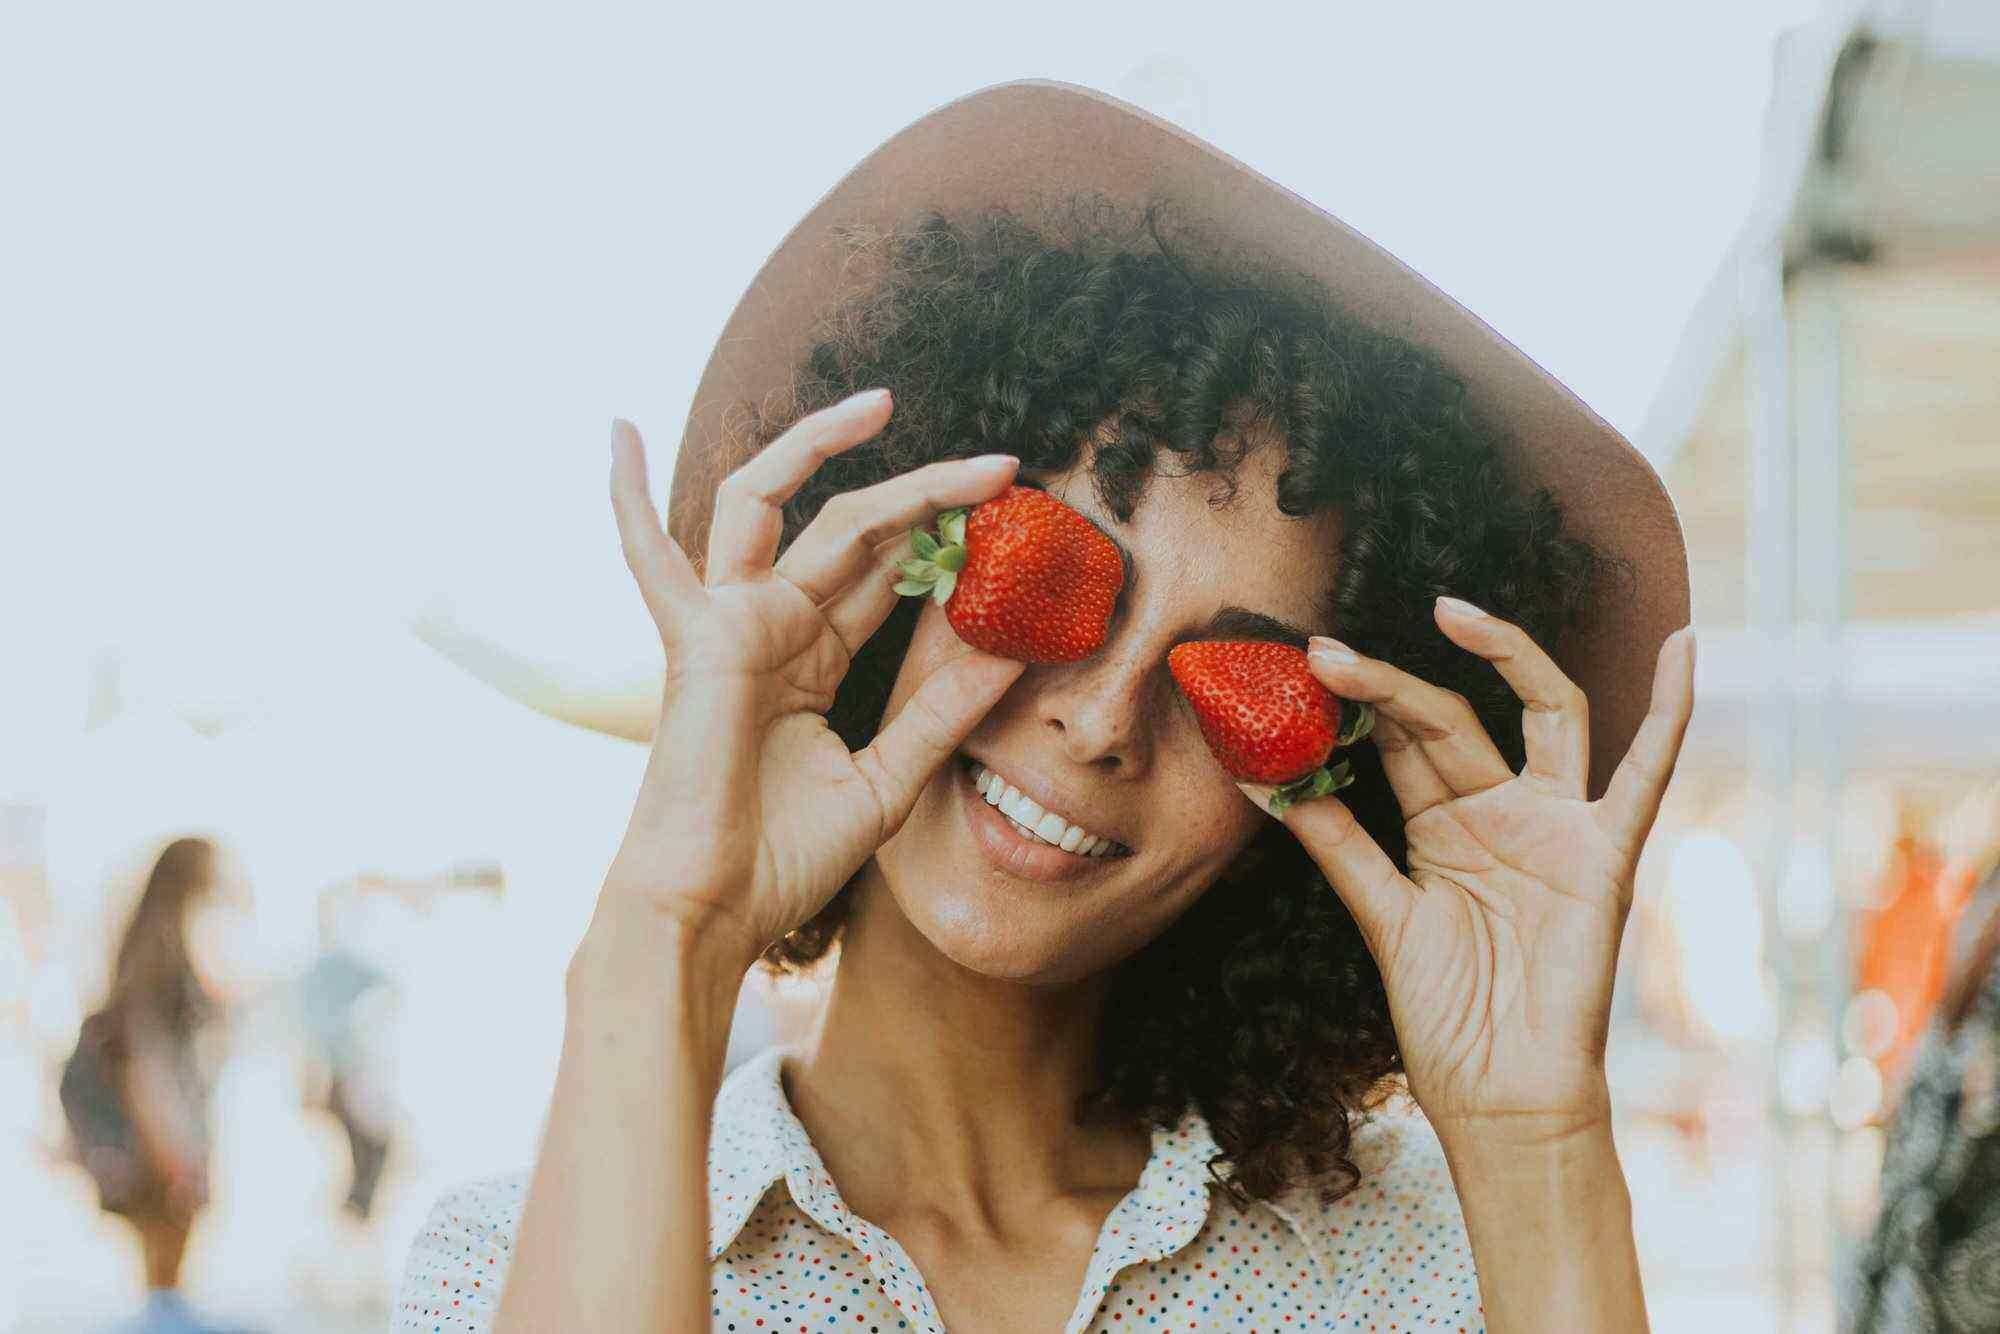 Lady with curly hair and a hat smiling and holding strawberries to her eyes